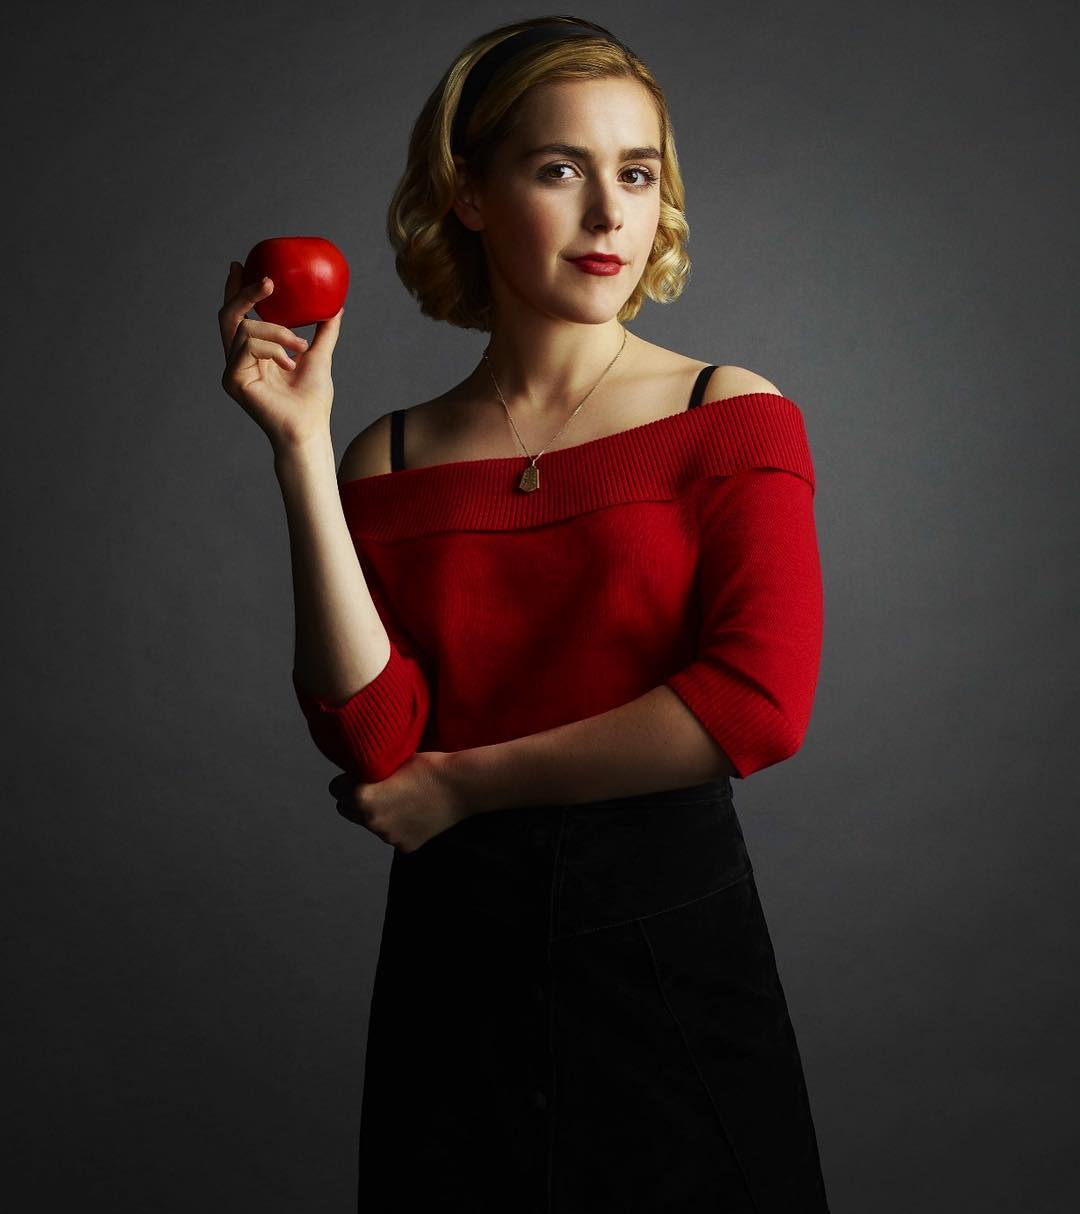 Sabrina Spellman Chilling Adventures Of Sabrina Wiki